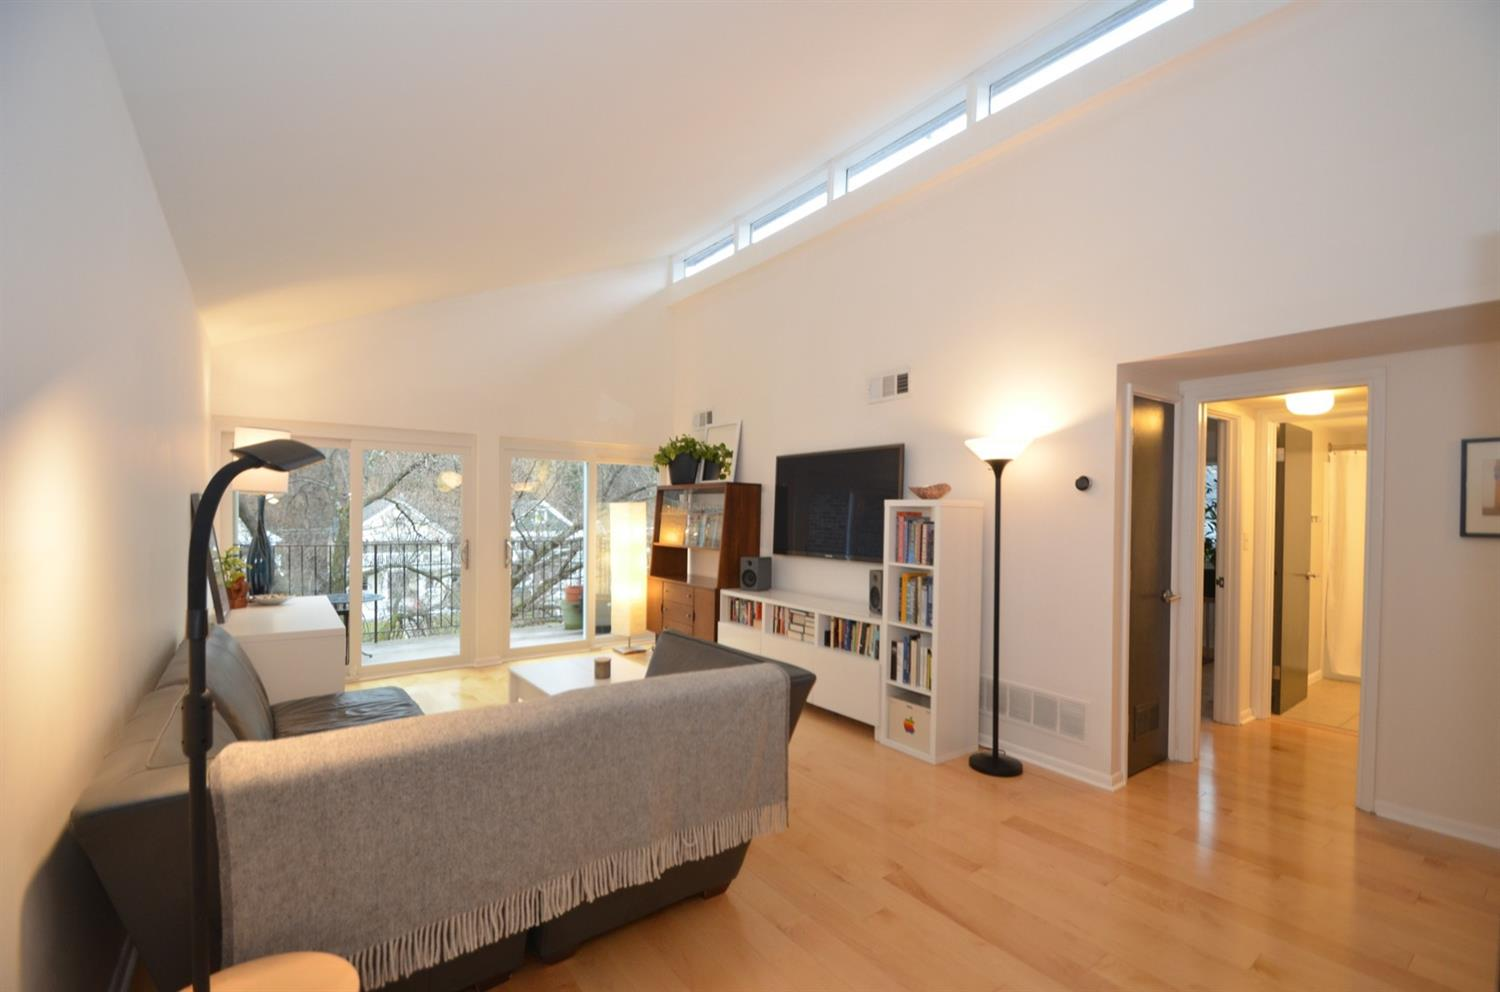 What a 'great room!'  Complete with maple floors, crisp white walls, and new Gilkey windows.